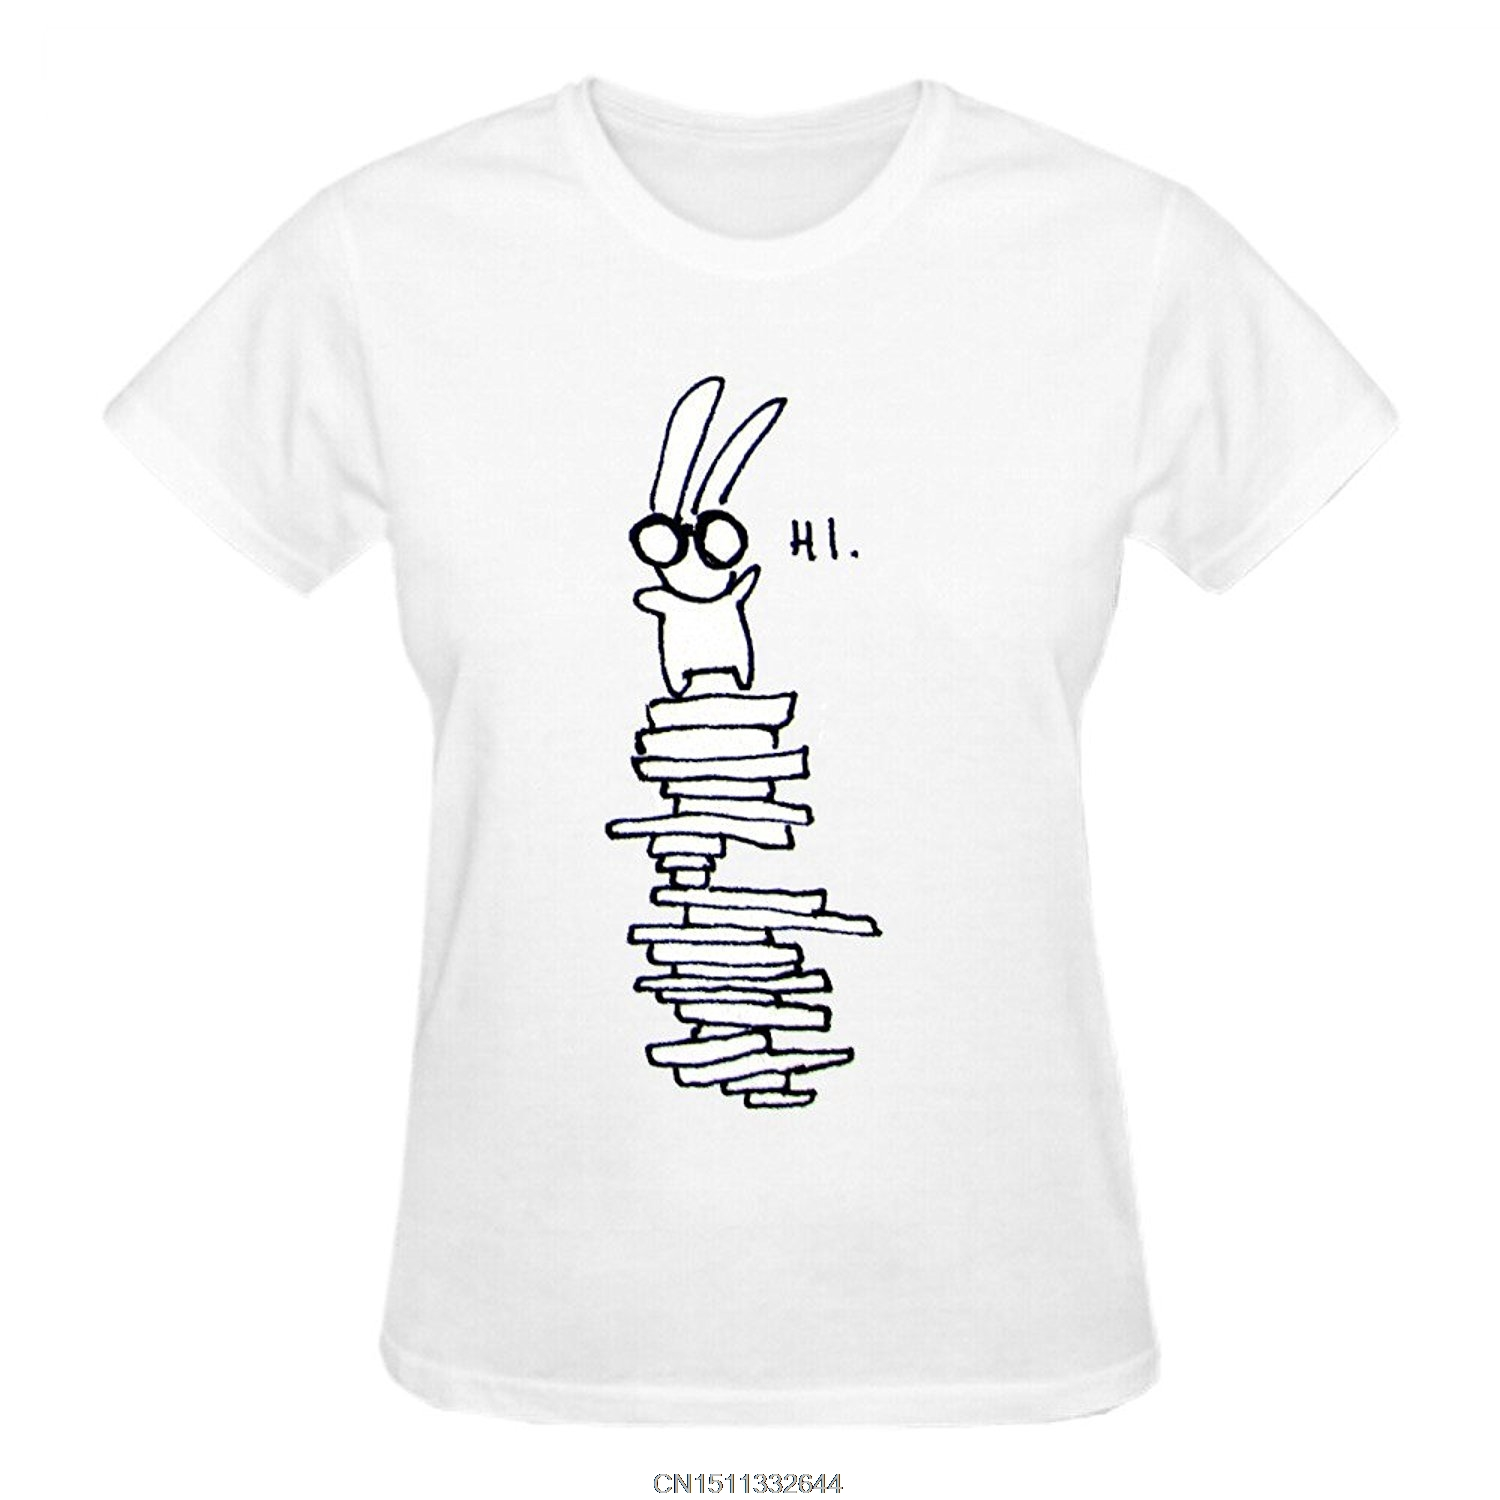 Design your own t-shirt female - Jzecco Premium Fitted Quality Tee Shirts Bunny Glasses Says Hi Design Your Own T Shirts Women